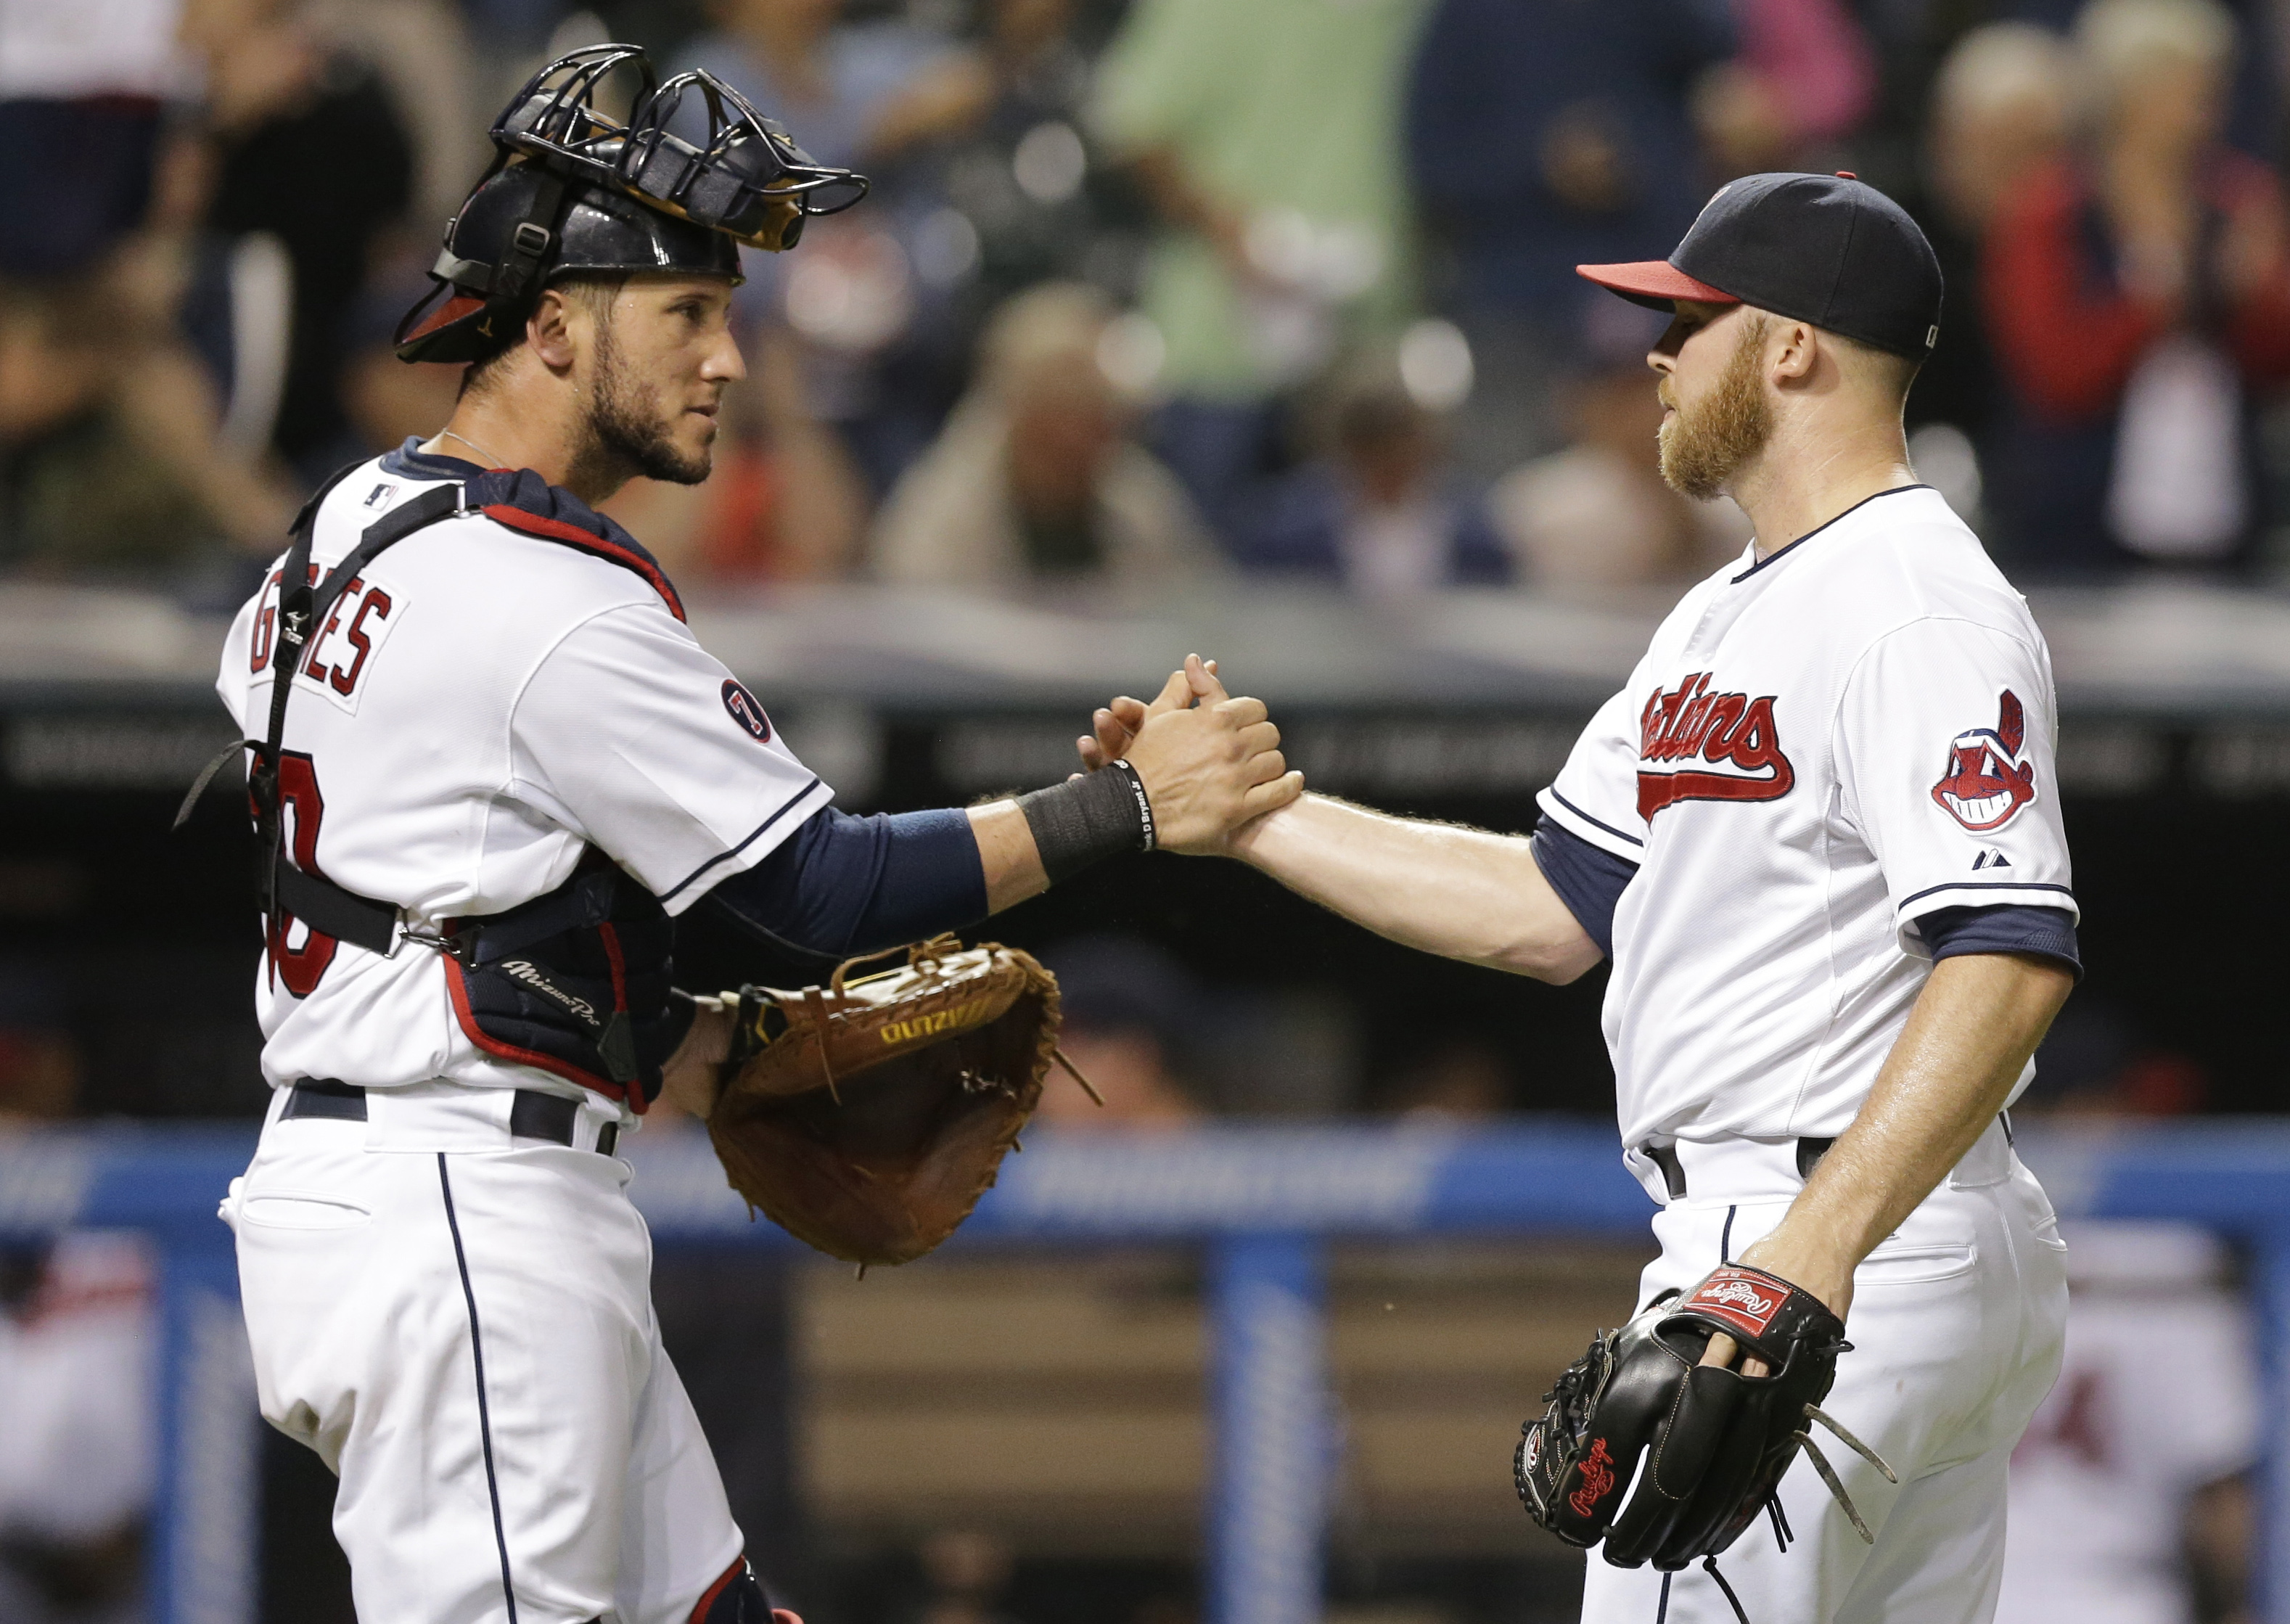 Cleveland Indians relief pitcher Cody Allen, right, is congratulated by catcher Yan Gomes after the Indians defeated the Houston Astros 3-1 in a baseball game, Thursday, July 9, 2015, in Cleveland. (AP Photo/Tony Dejak)